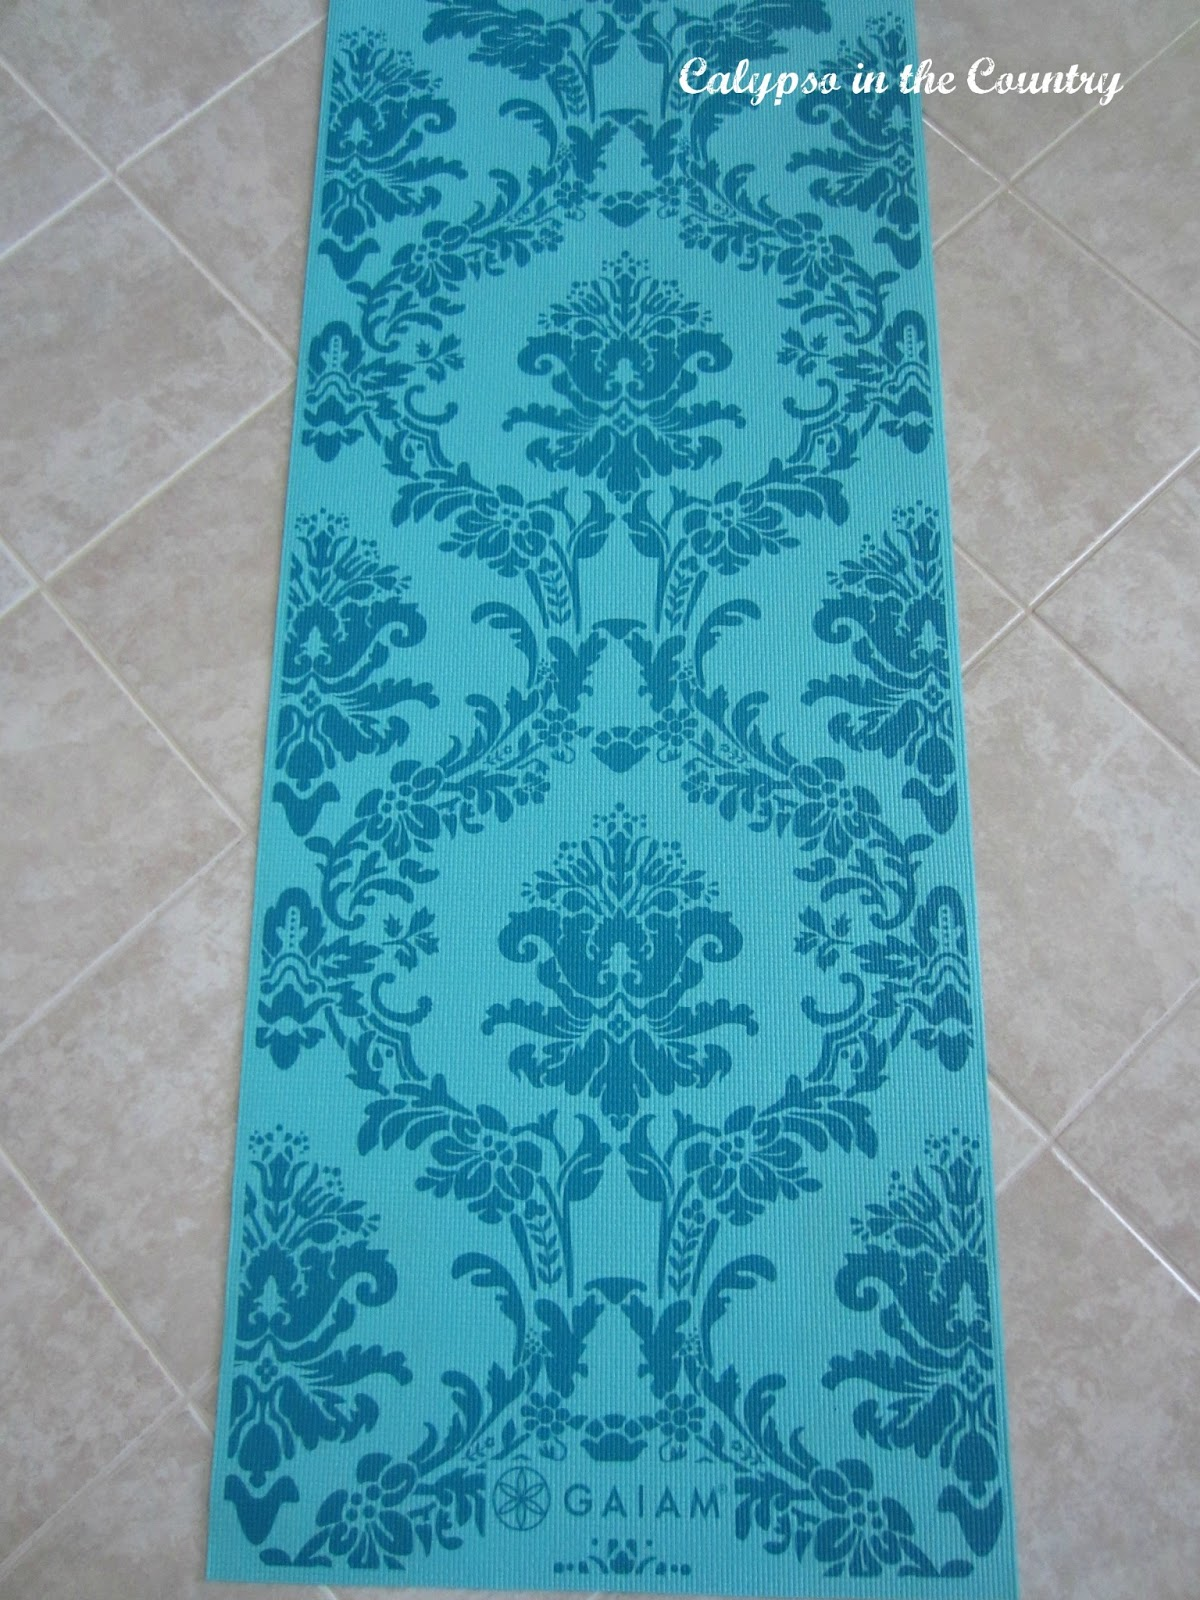 yoga mat fun fox by present mats collections in gift fullxfull style ideas zero cute practice given arianna il idea